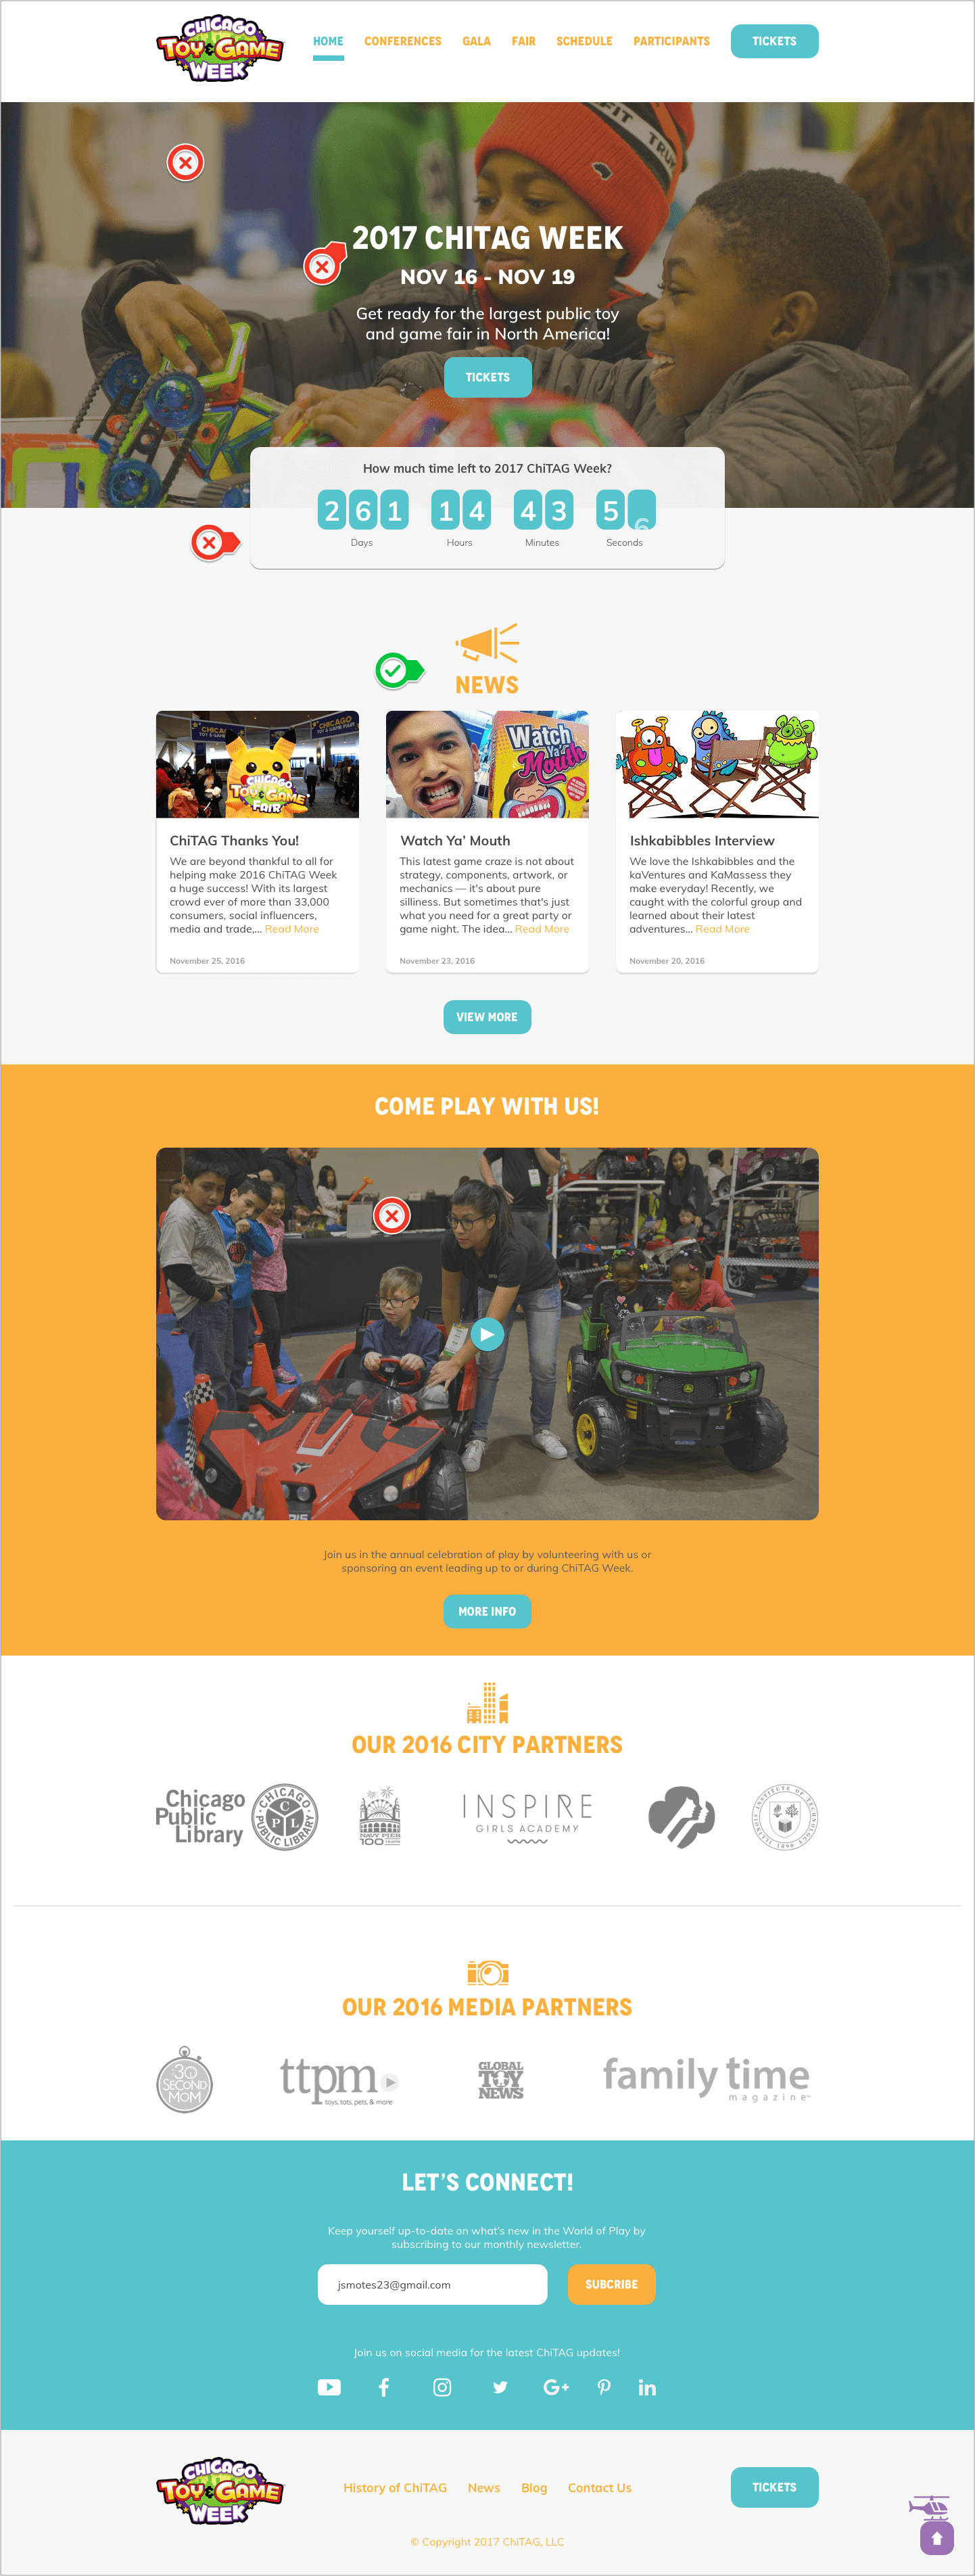 Homepage-min.png